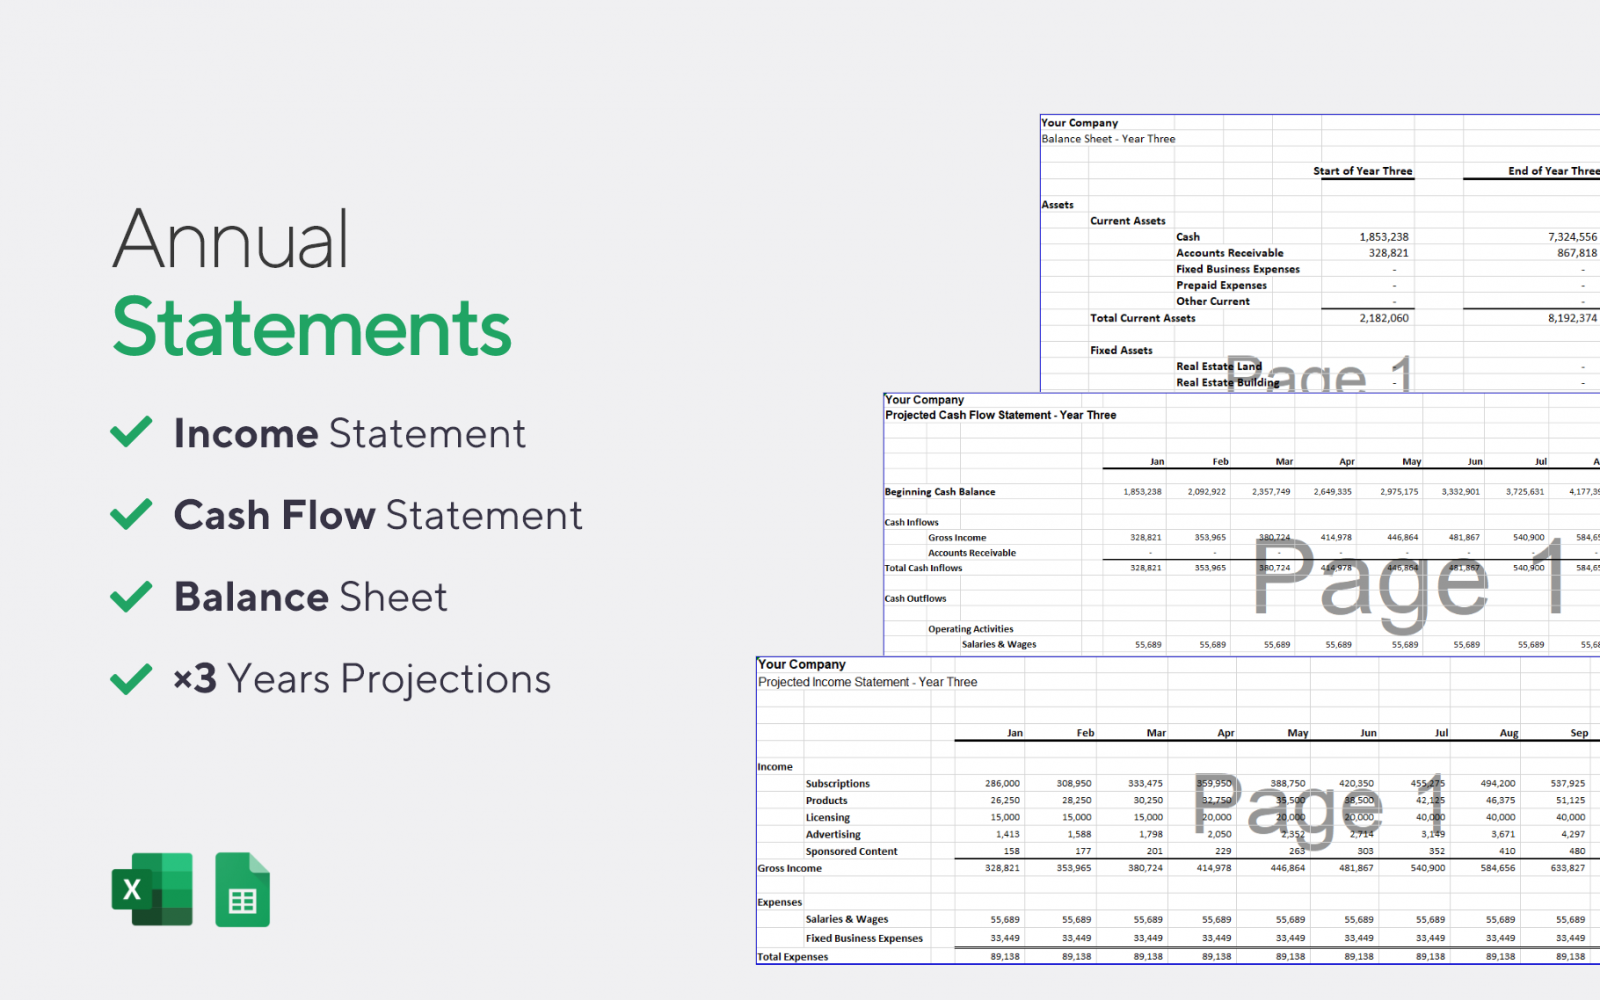 Annual Accounting Statements - Software & SaaS Startup Financial Model Template for Excel